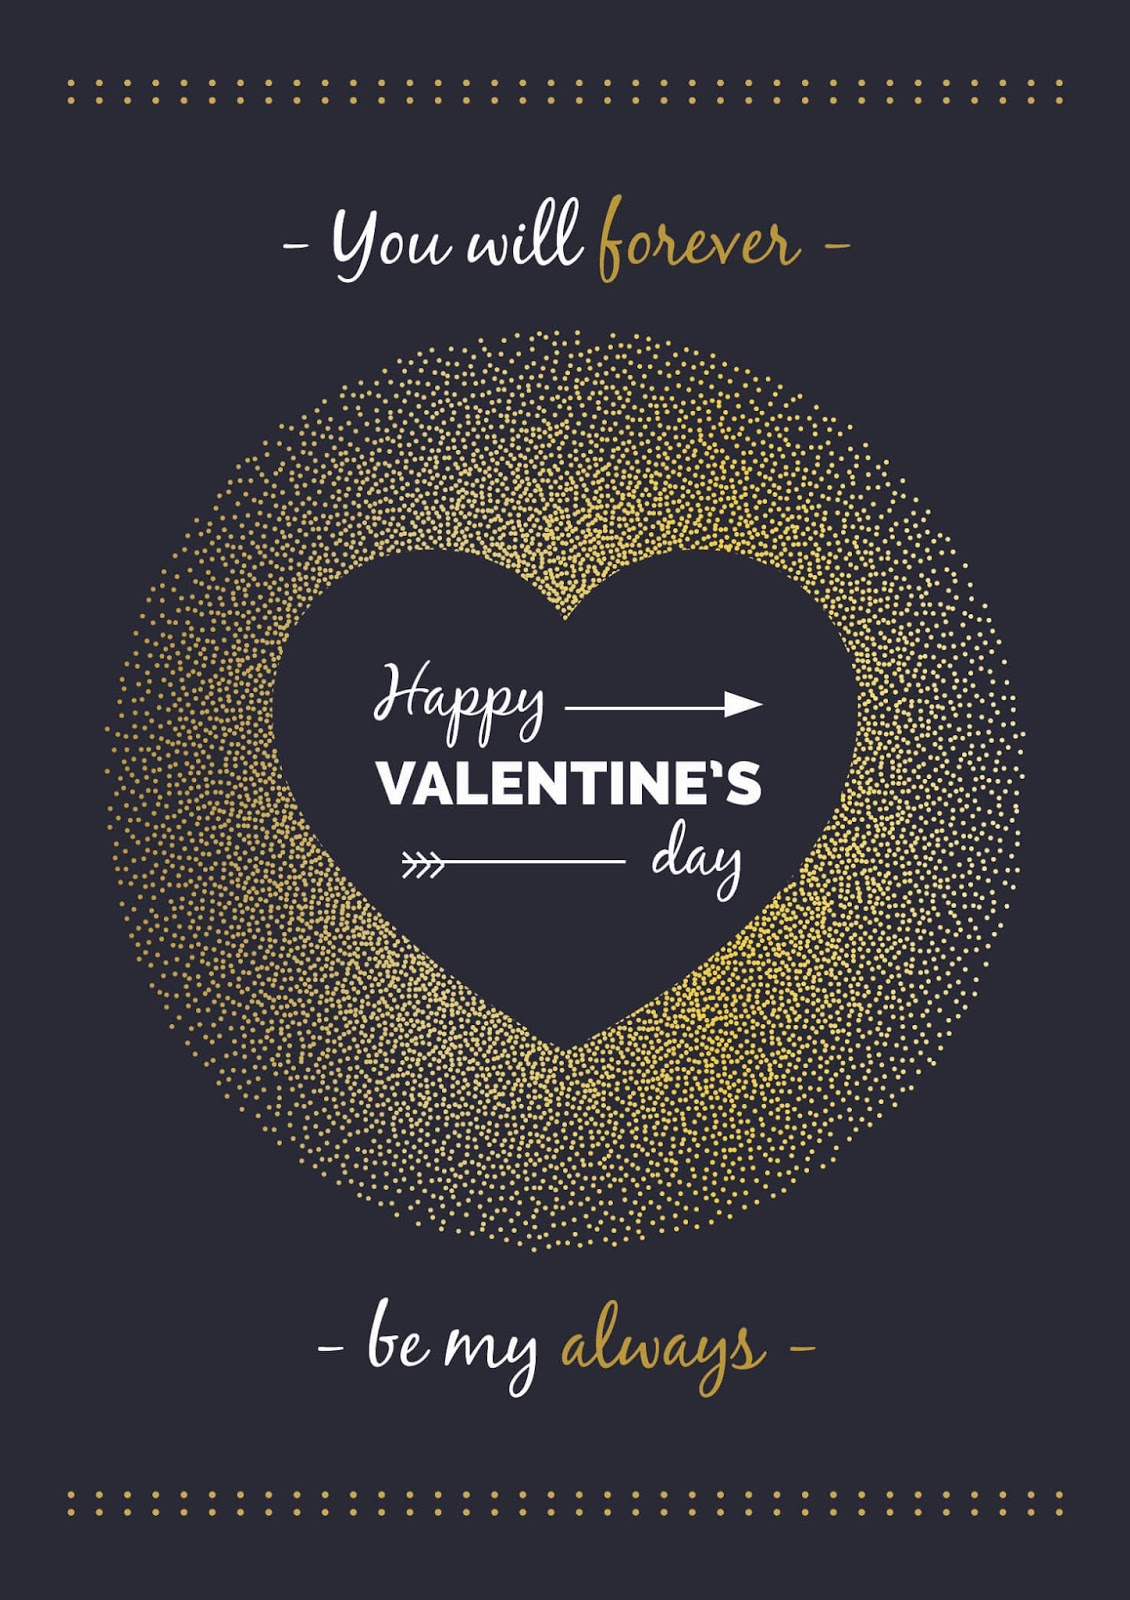 free valentines day cards printable.